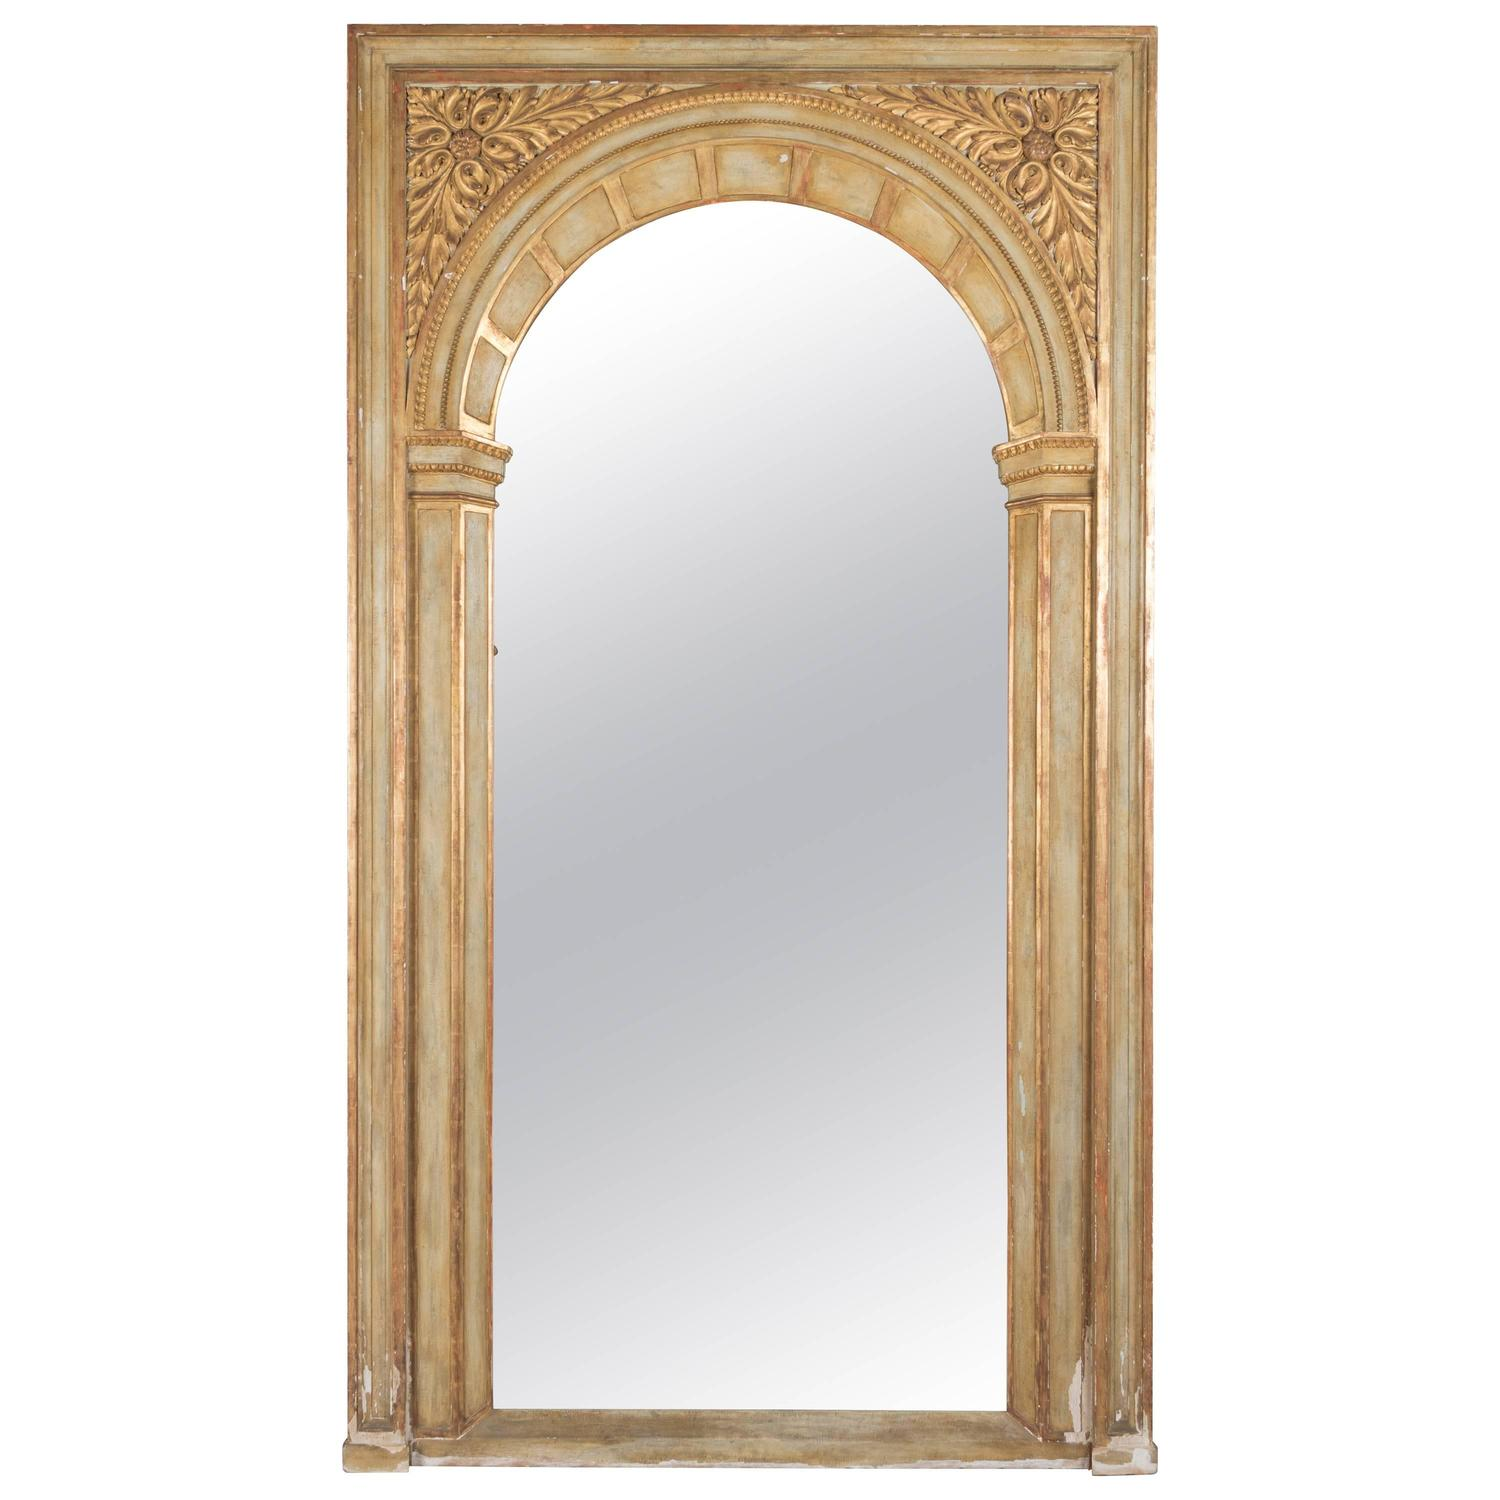 Large french parcel gilt floor mirror for sale at 1stdibs for Floor mirrors for sale